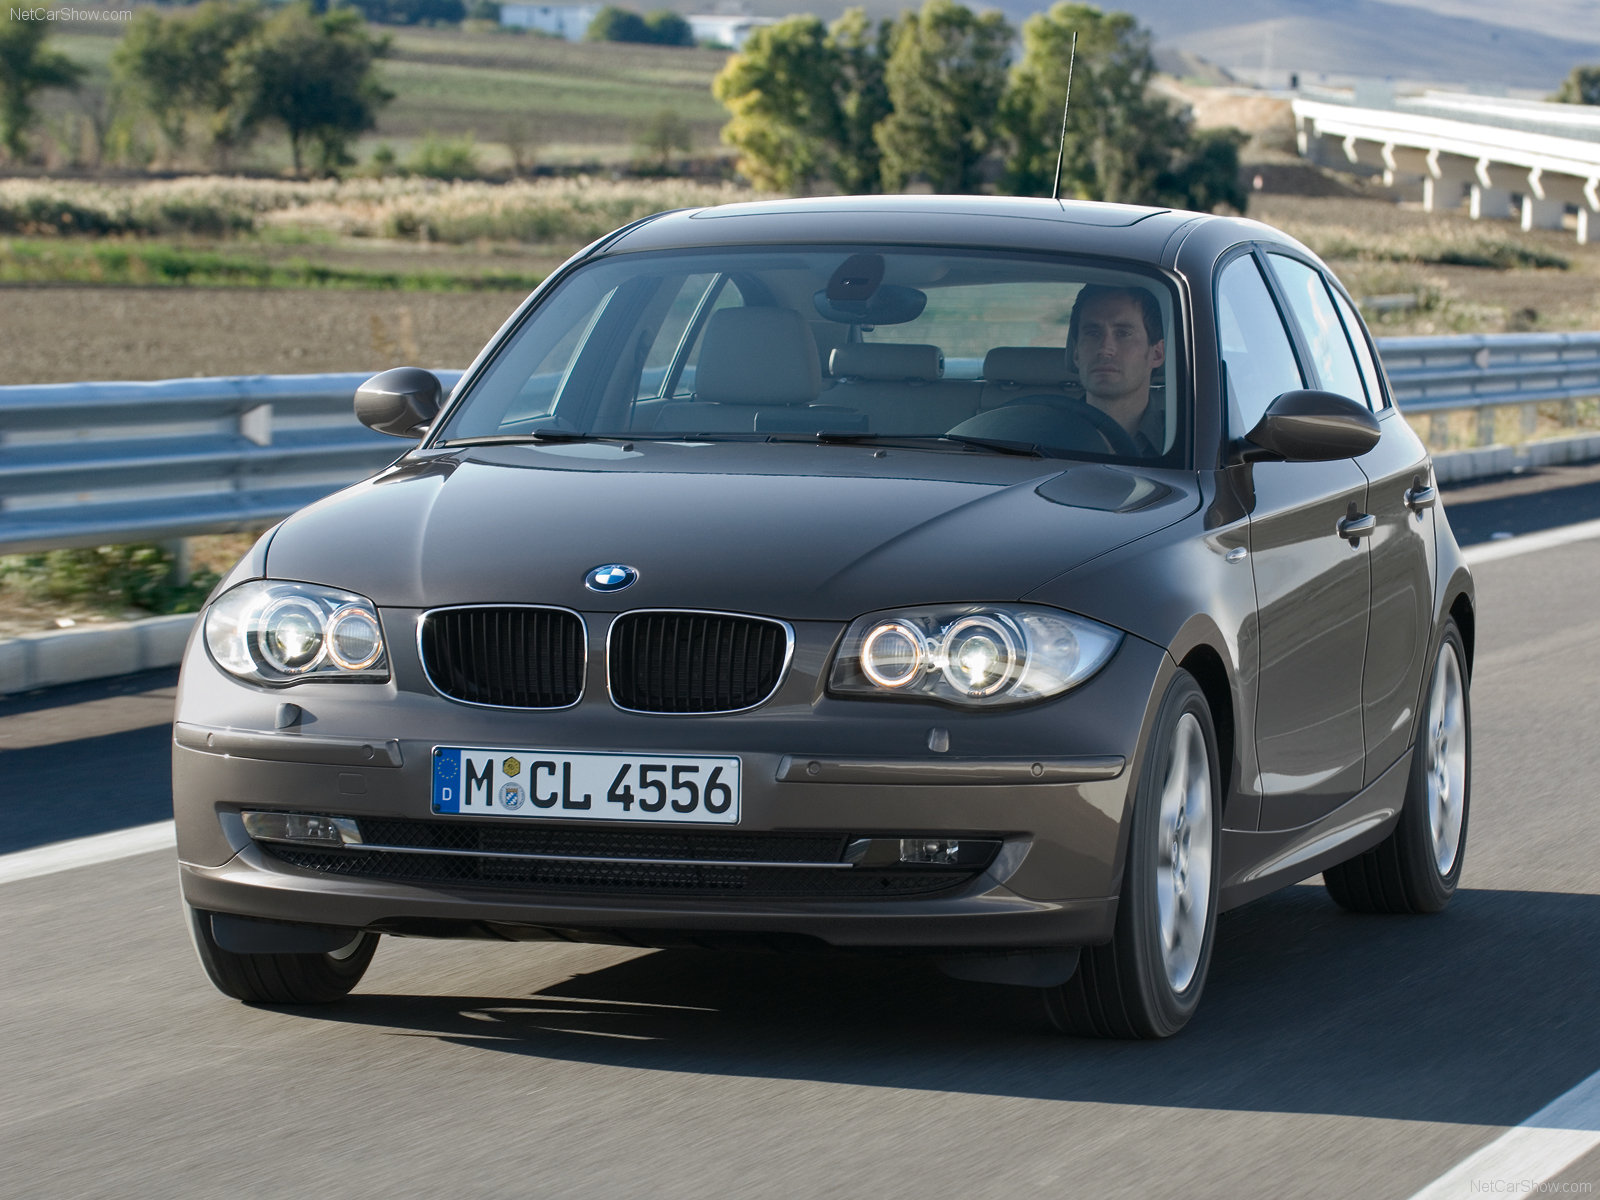 bmw 1 series 5 door e87 photos photogallery with 46 pics